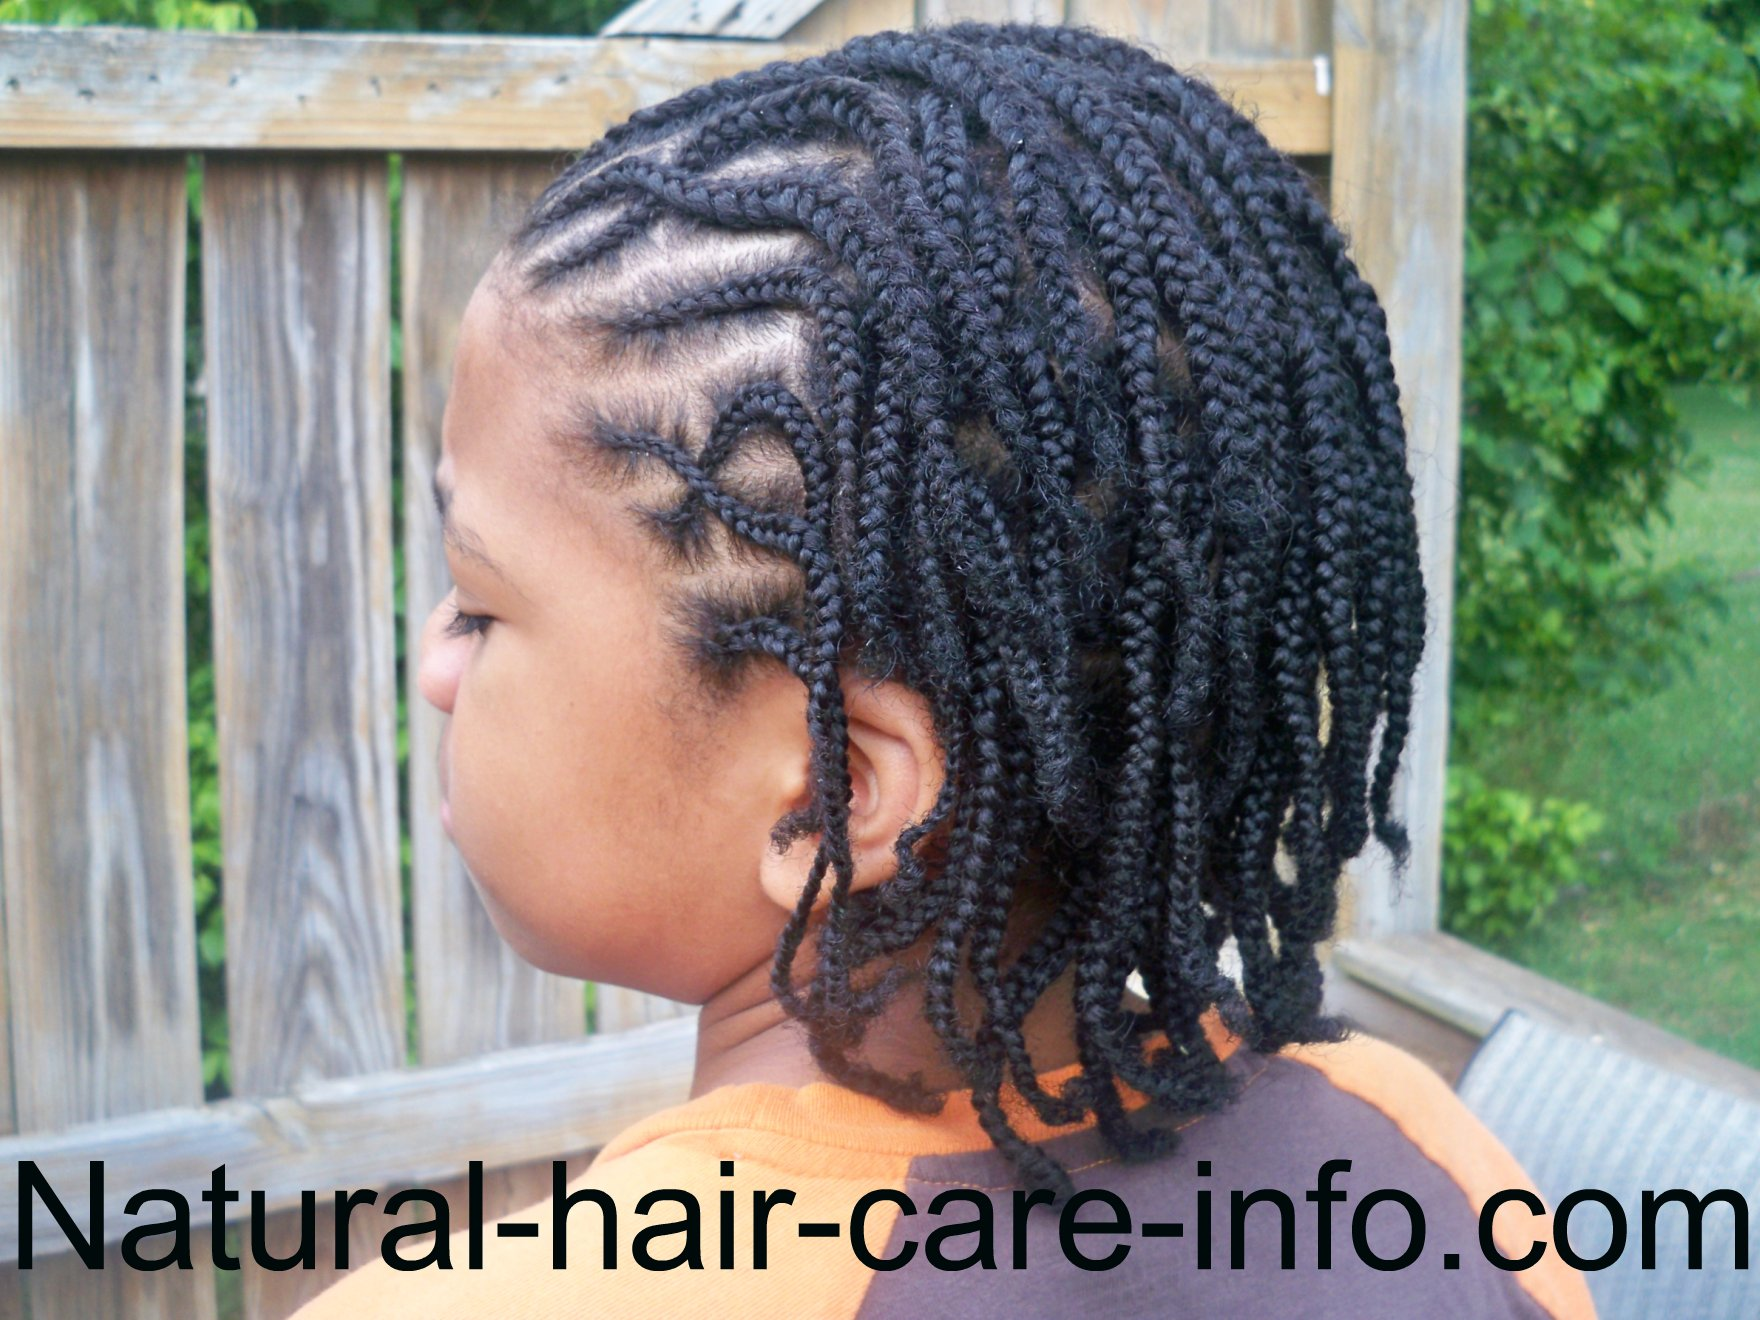 Stupendous Braid Hairstyles For Men Complete List And Tutorials Hairstyles For Men Maxibearus